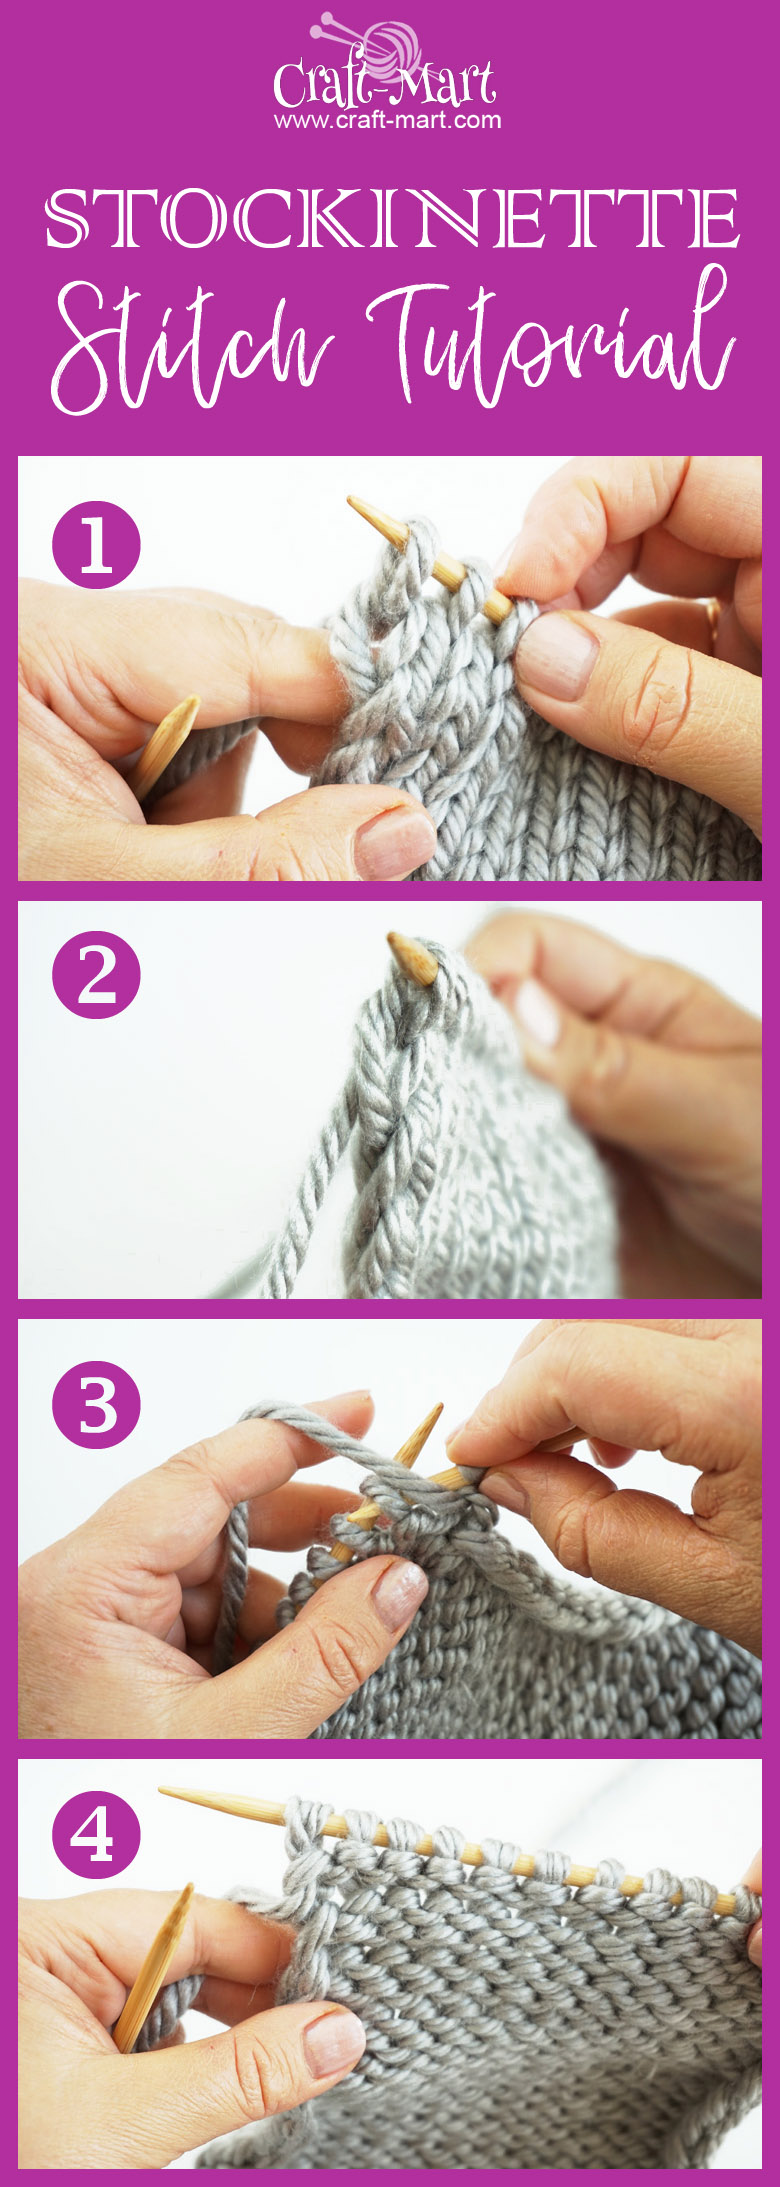 step-by-step tutorial for stockinette stitch